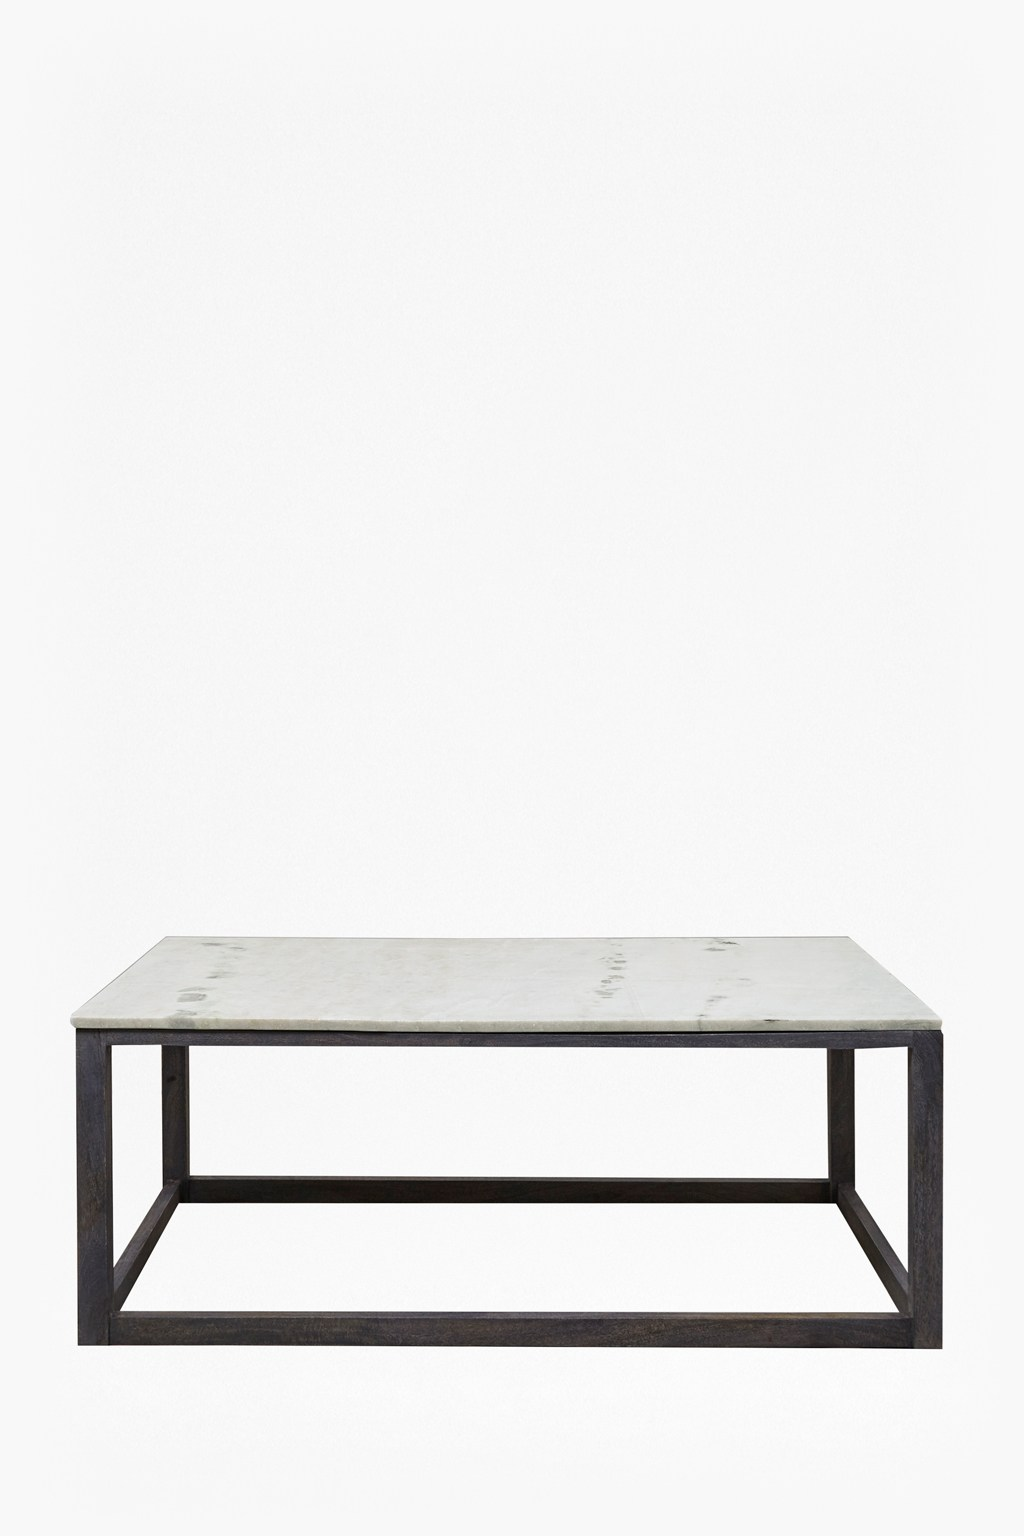 marble coffee table loading images. marble coffee table  collection  french connection